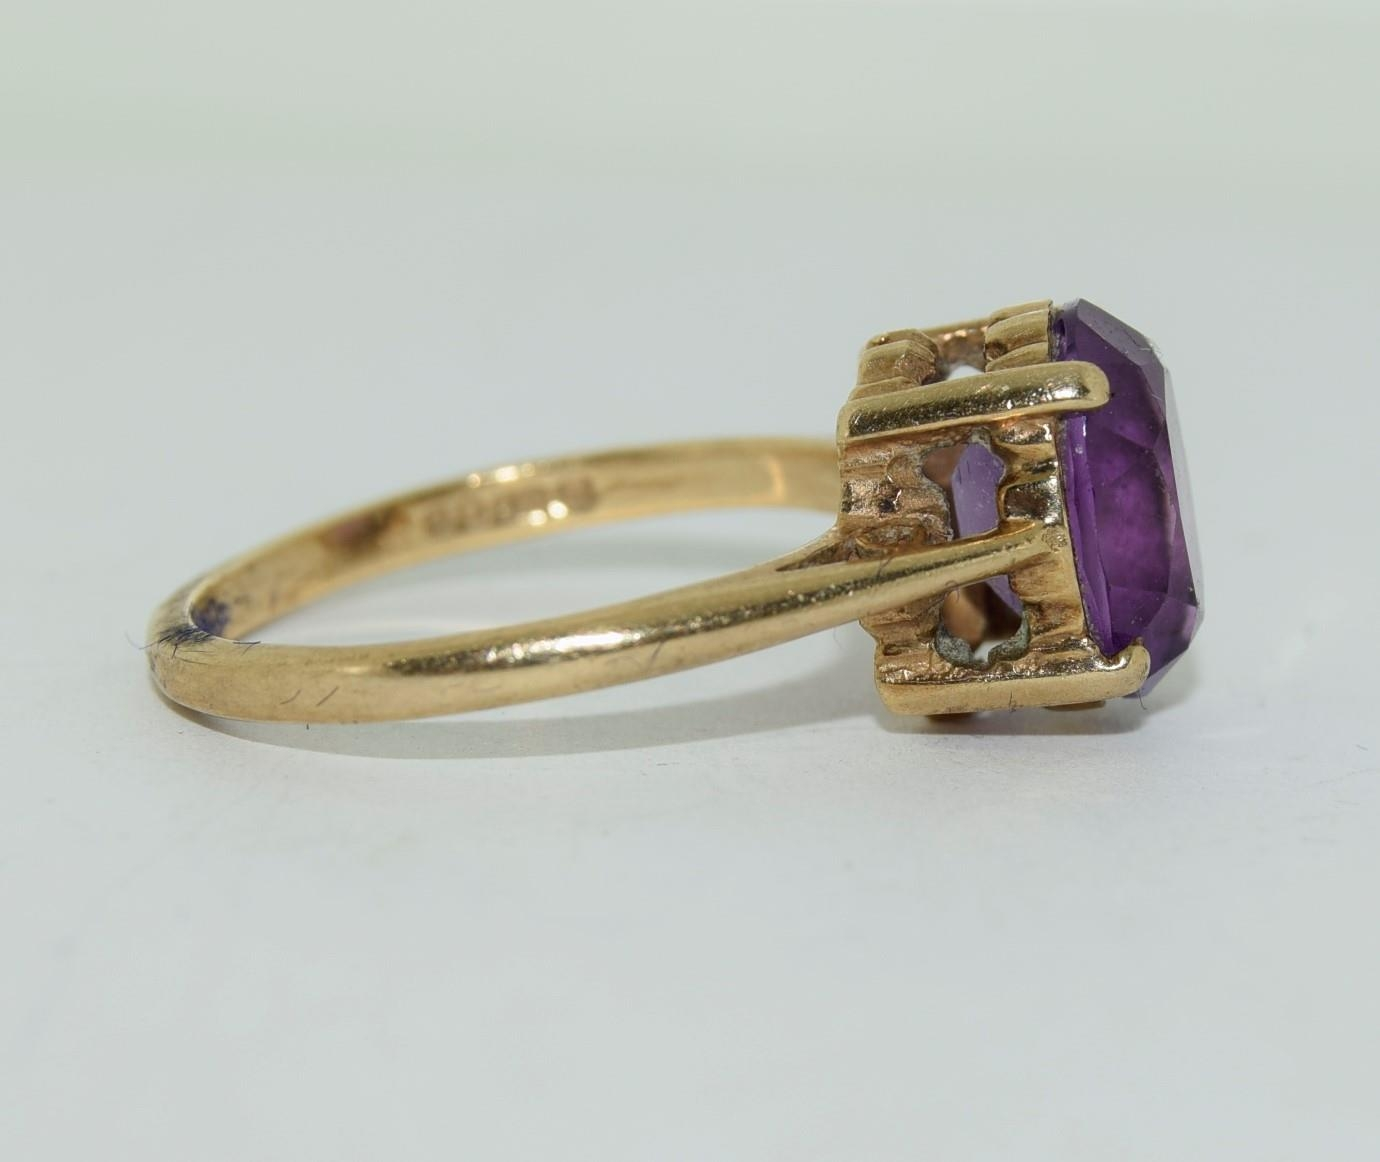 9ct gold ladies Amethyst ring size N - Image 4 of 12